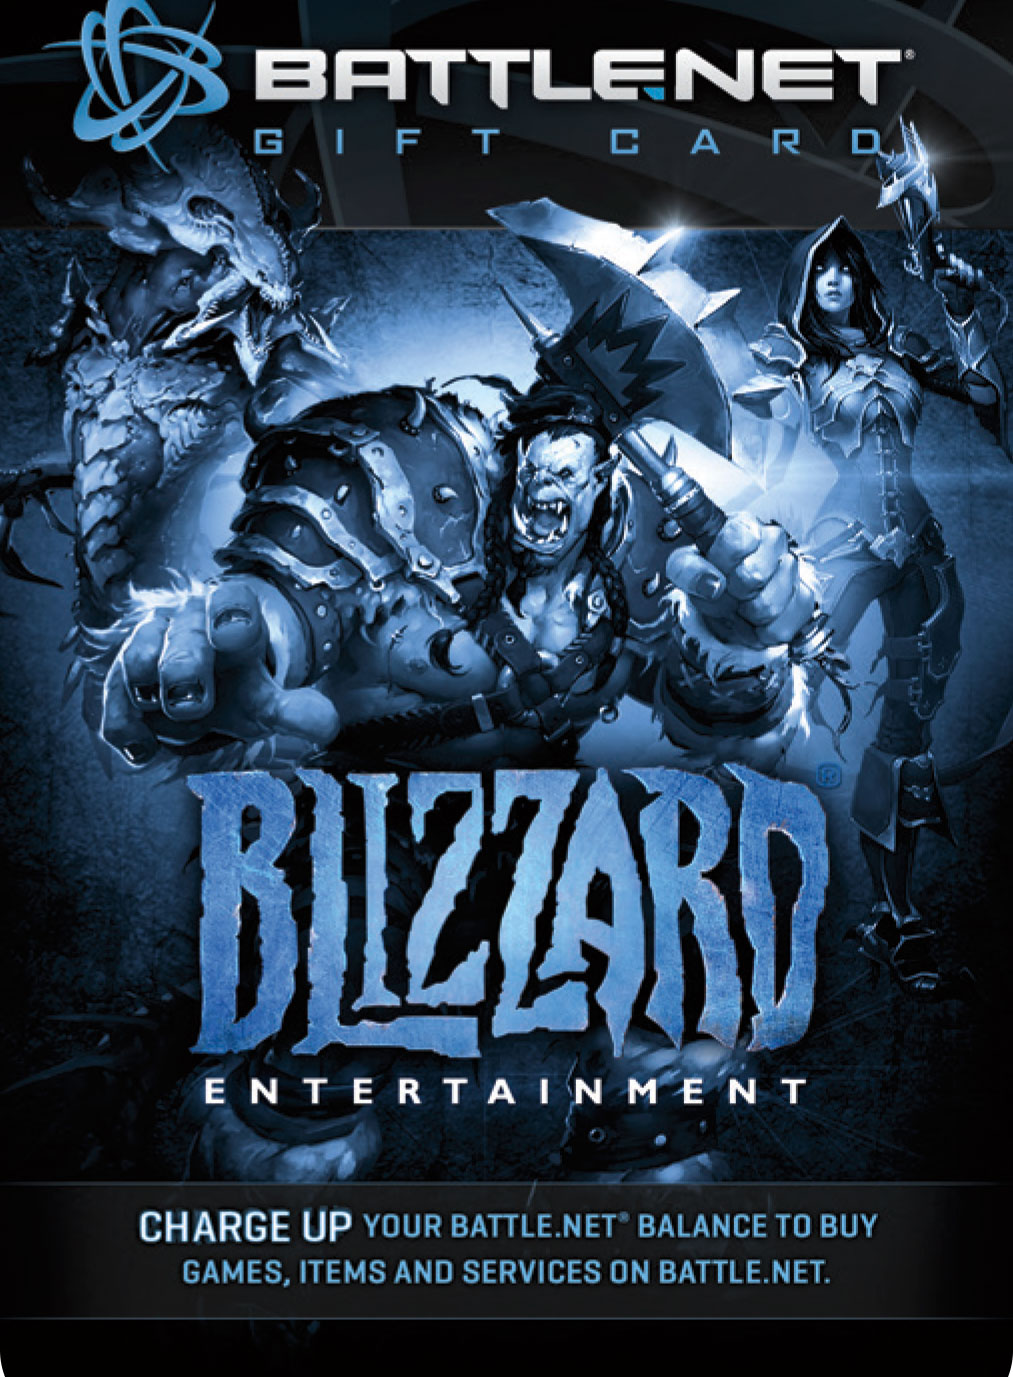 $20 Battle.net Store Gift Card Balance – Blizzard Entertainment [Digital Code]